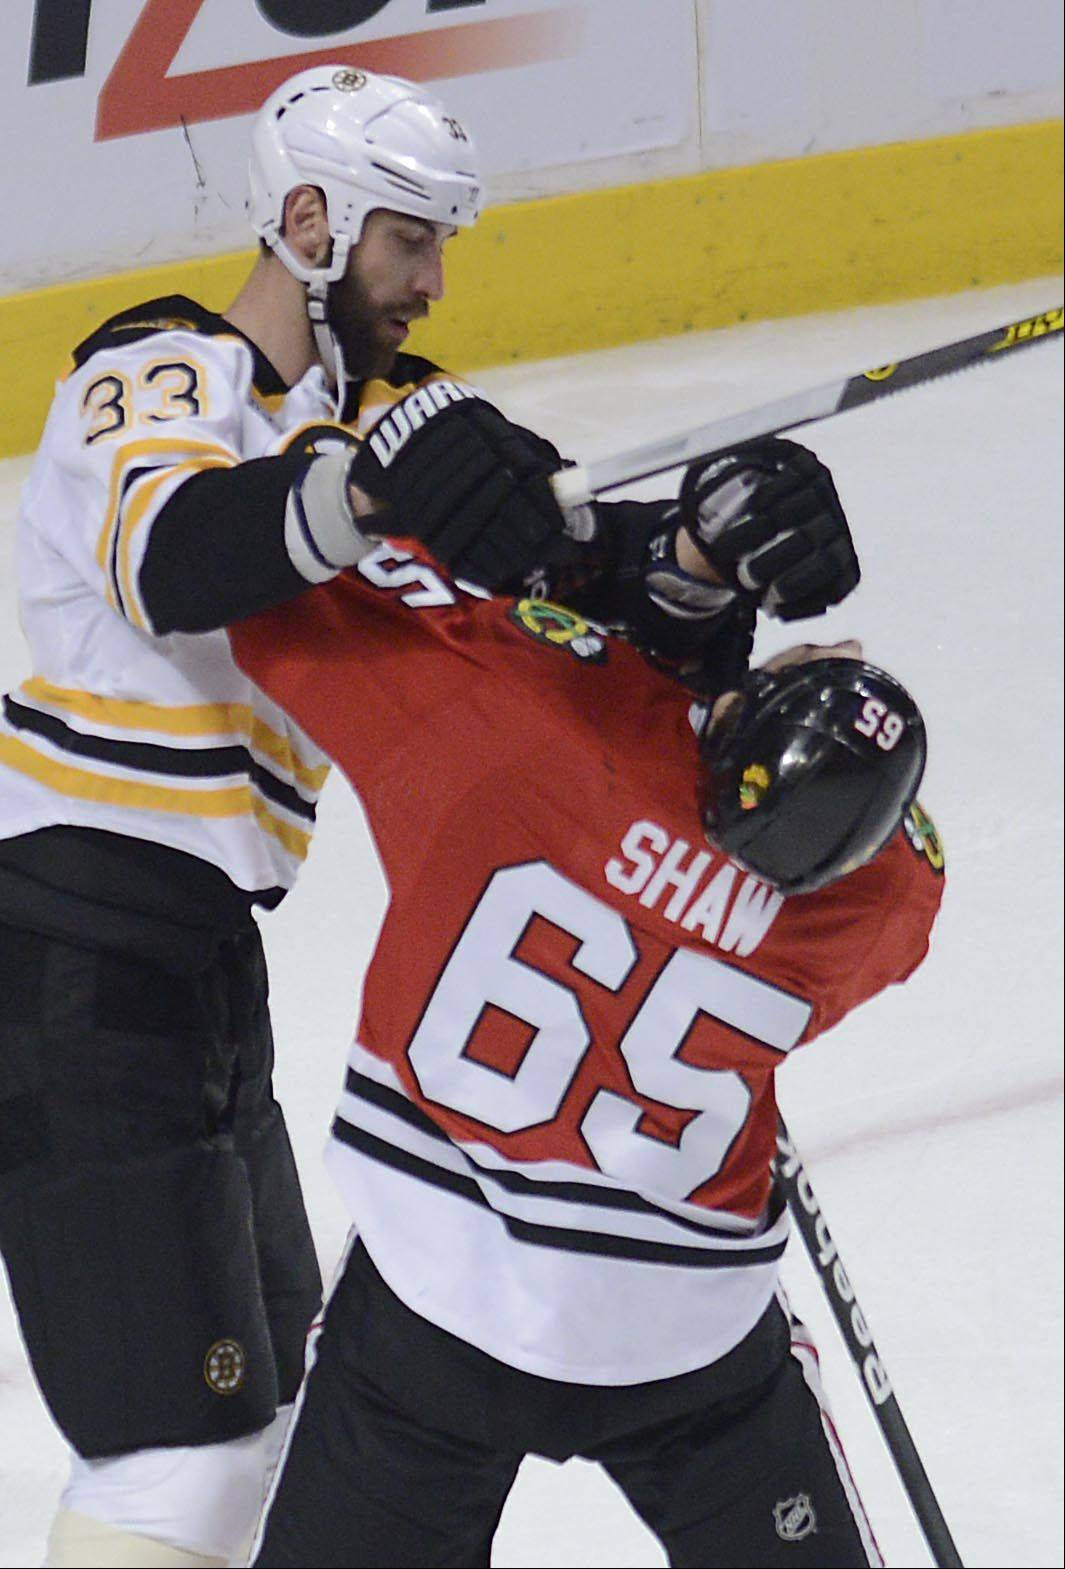 The Blackhawks' Andrew Shaw mixes it up with Bruins defenseman Zdeno Chara in the first period of Game 1 of the Stanley Cup Final on Wednesday at the United Center.